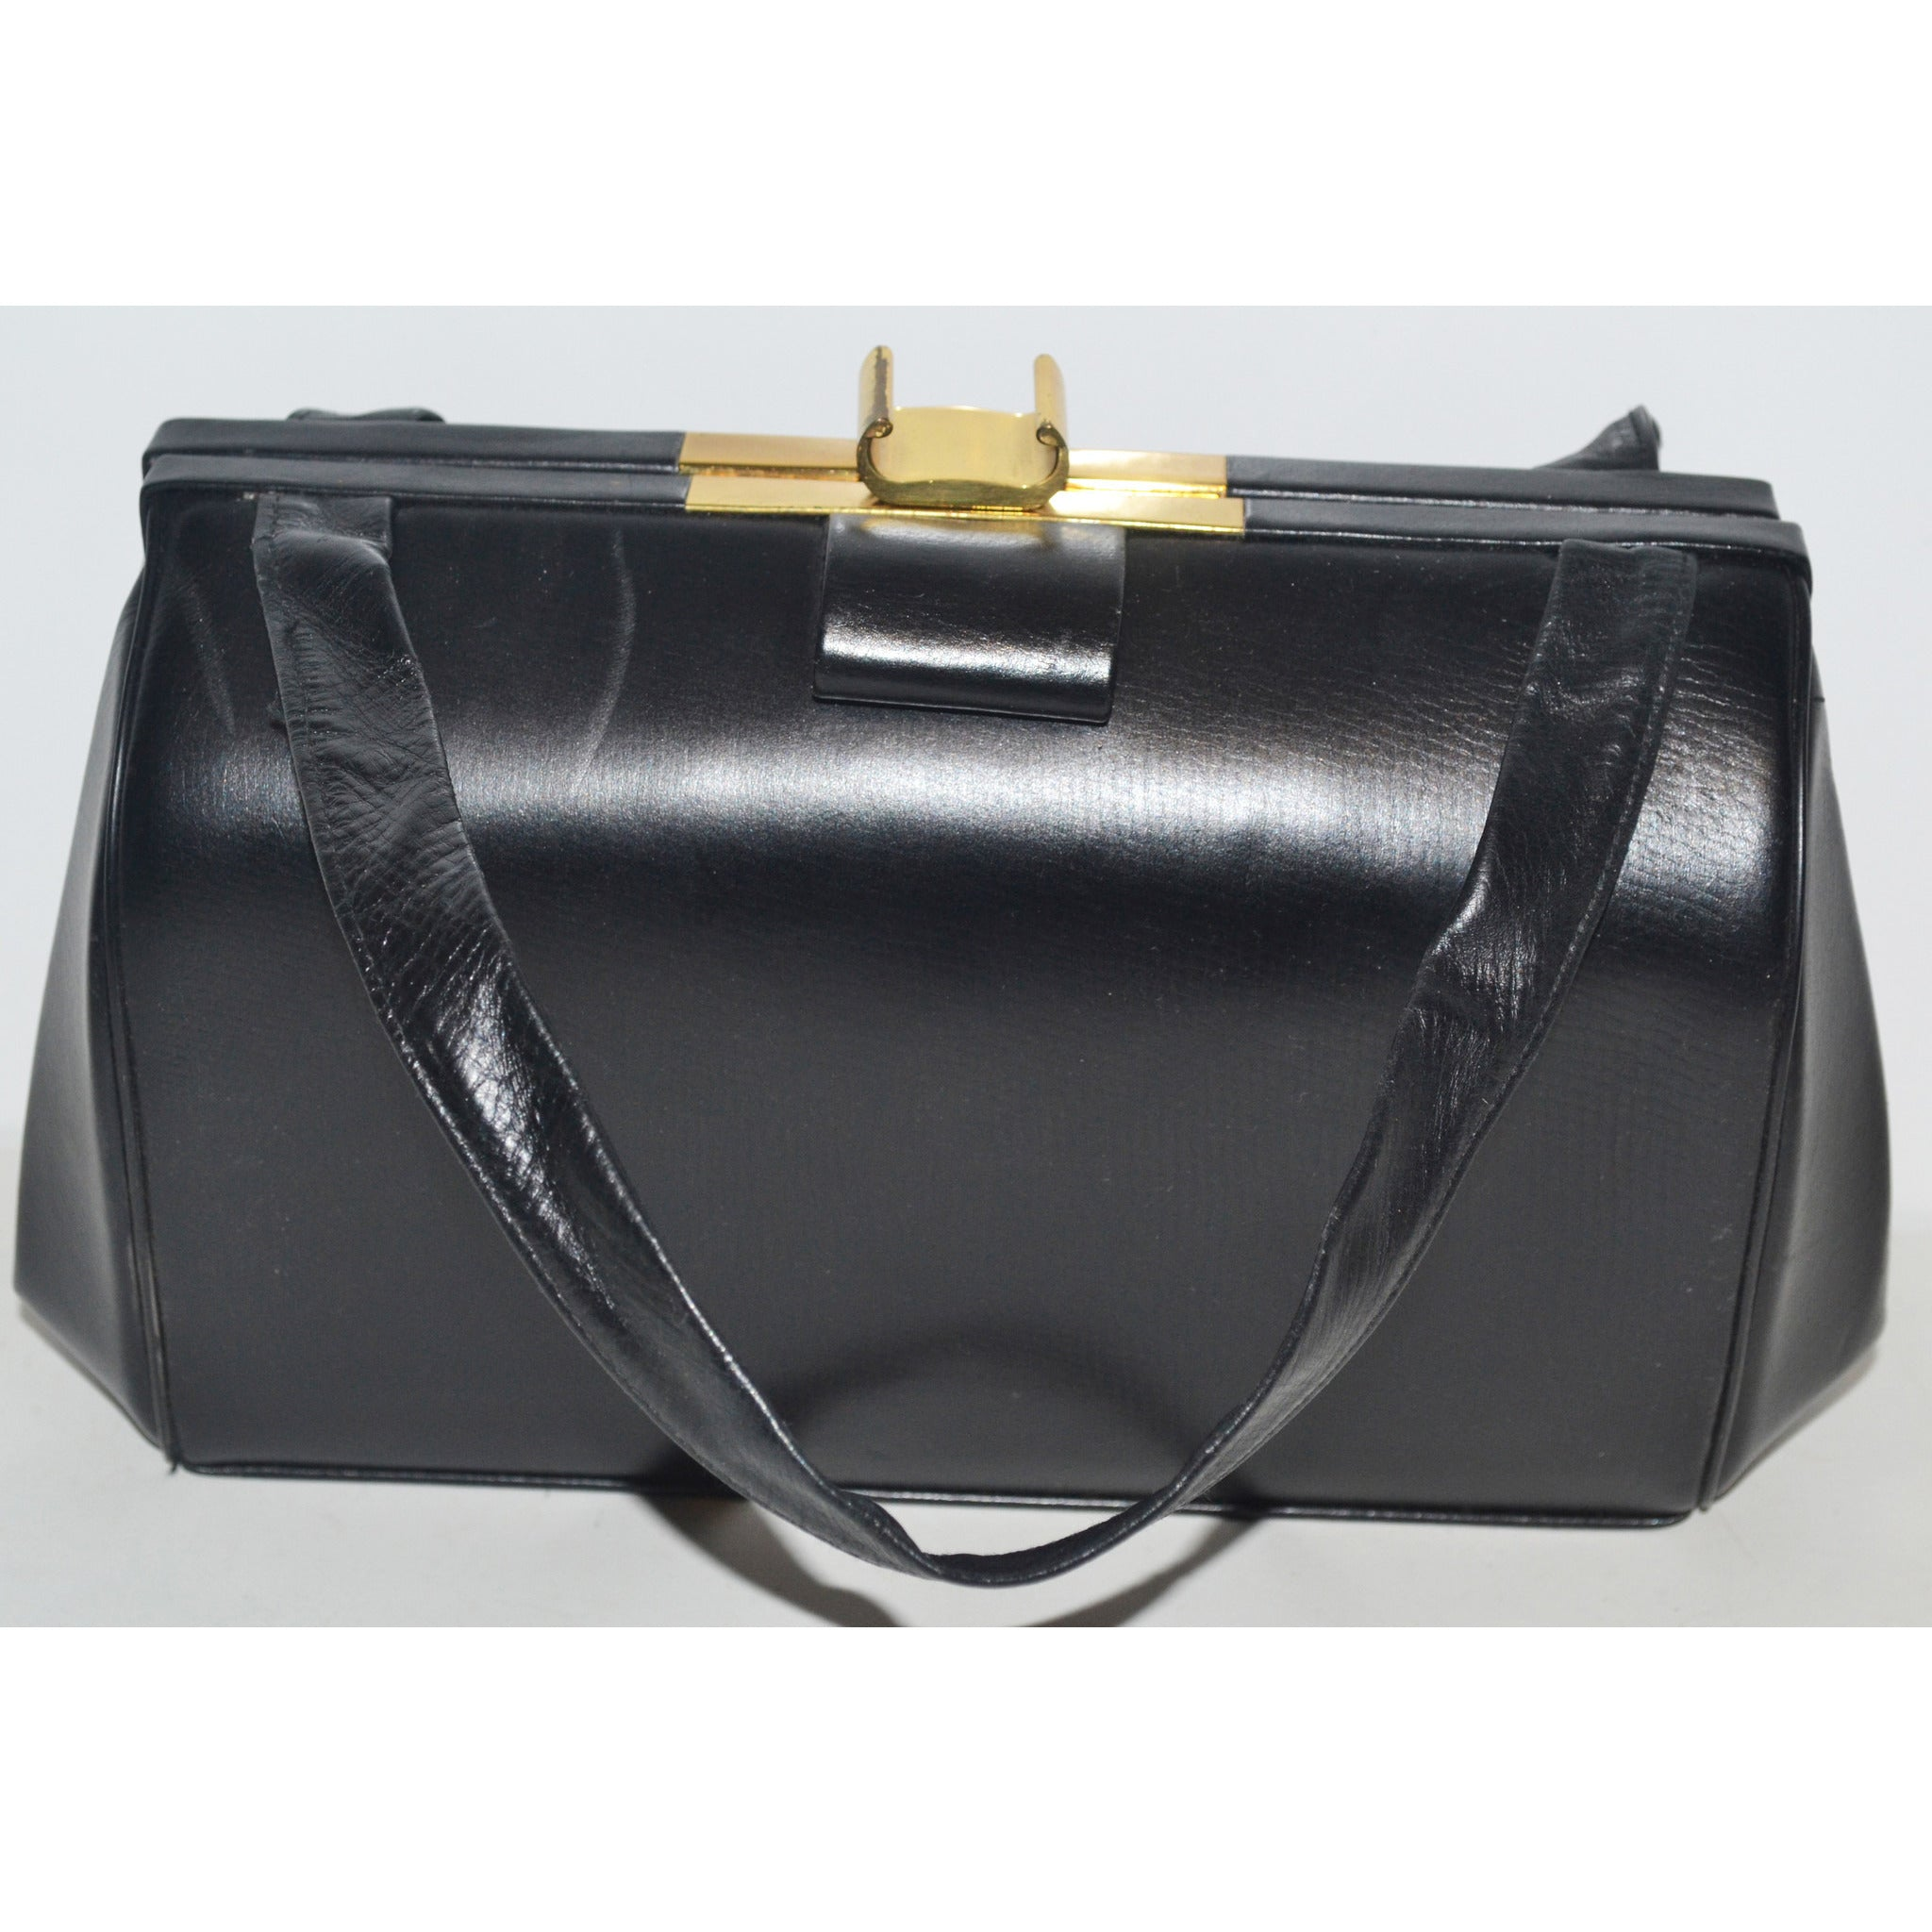 Vintage Black Leather Handbag By Jenny